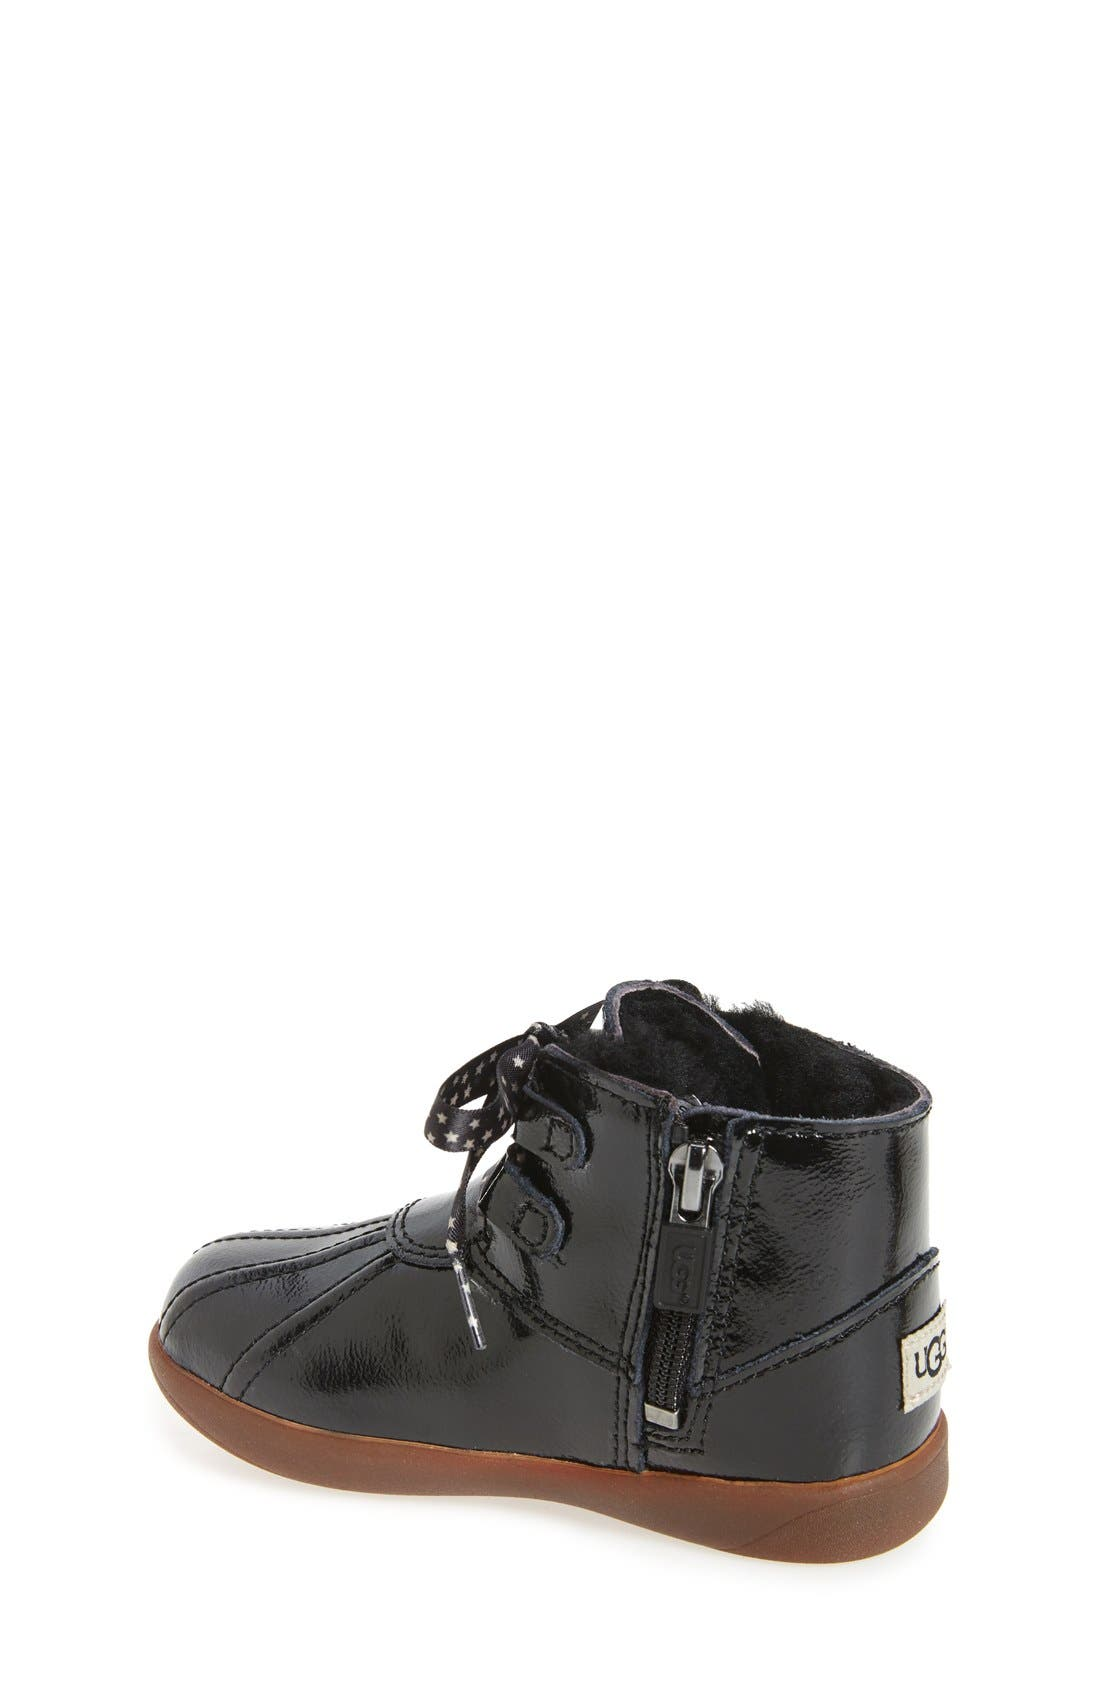 Payten Boot,                             Alternate thumbnail 2, color,                             Black Patent Leather